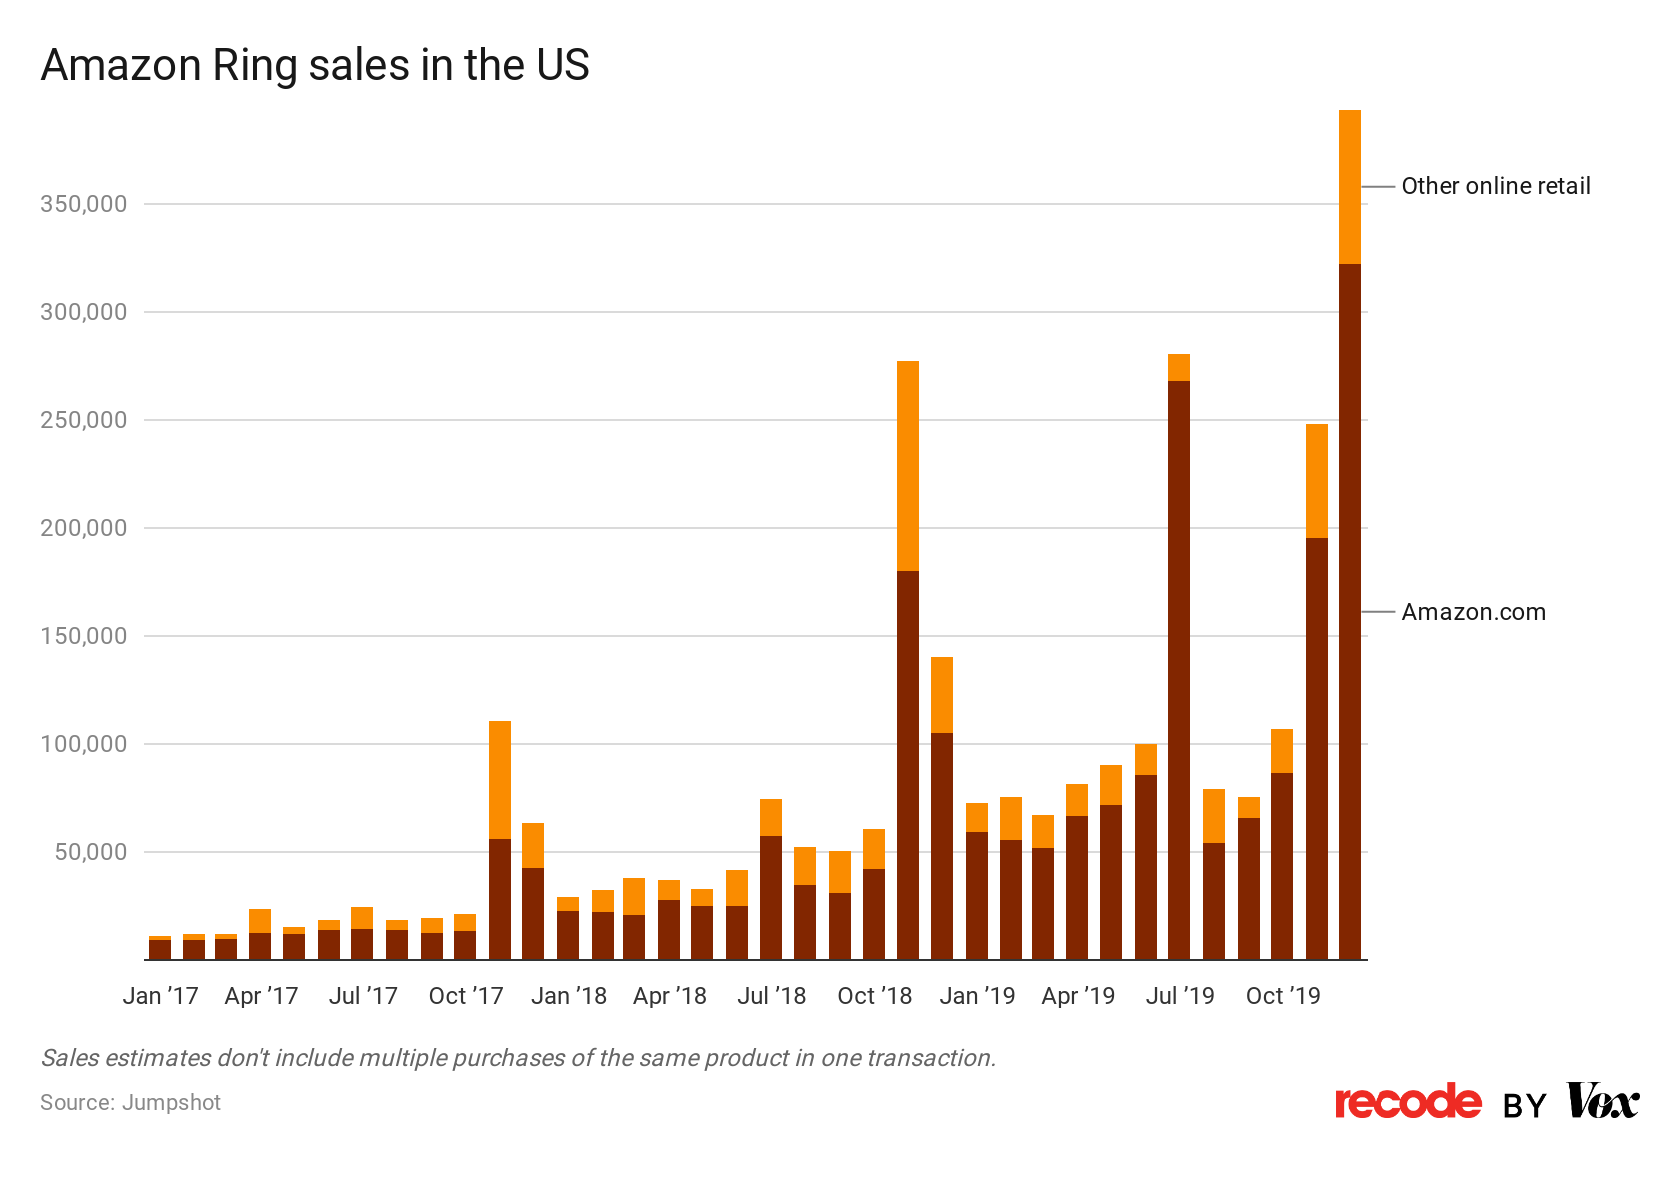 Amazon Ring sales in the US